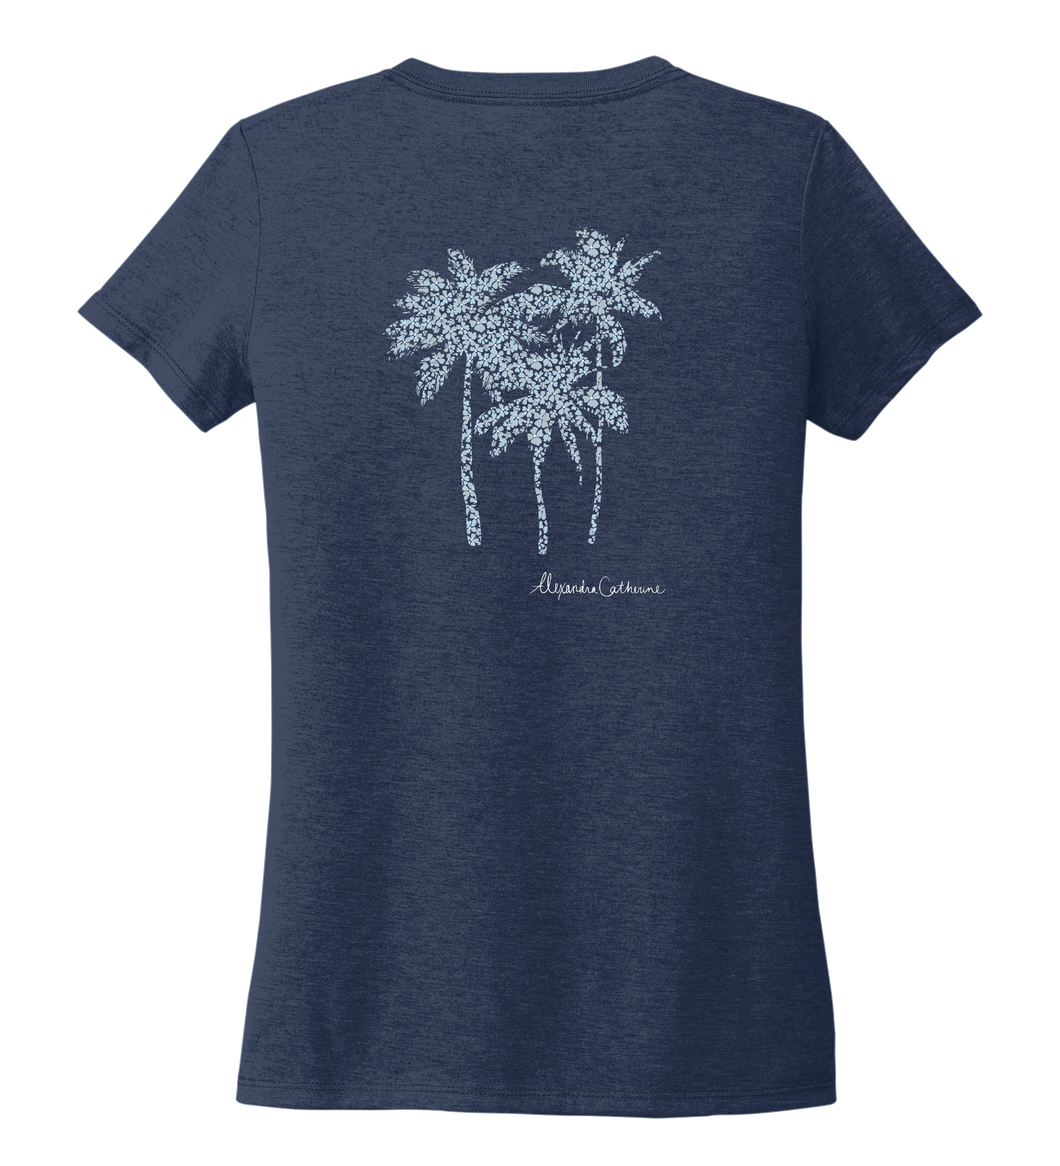 Alexandra Catherine, Palm Trees, Women's V-neck T-shirt in Deep Sea Blue